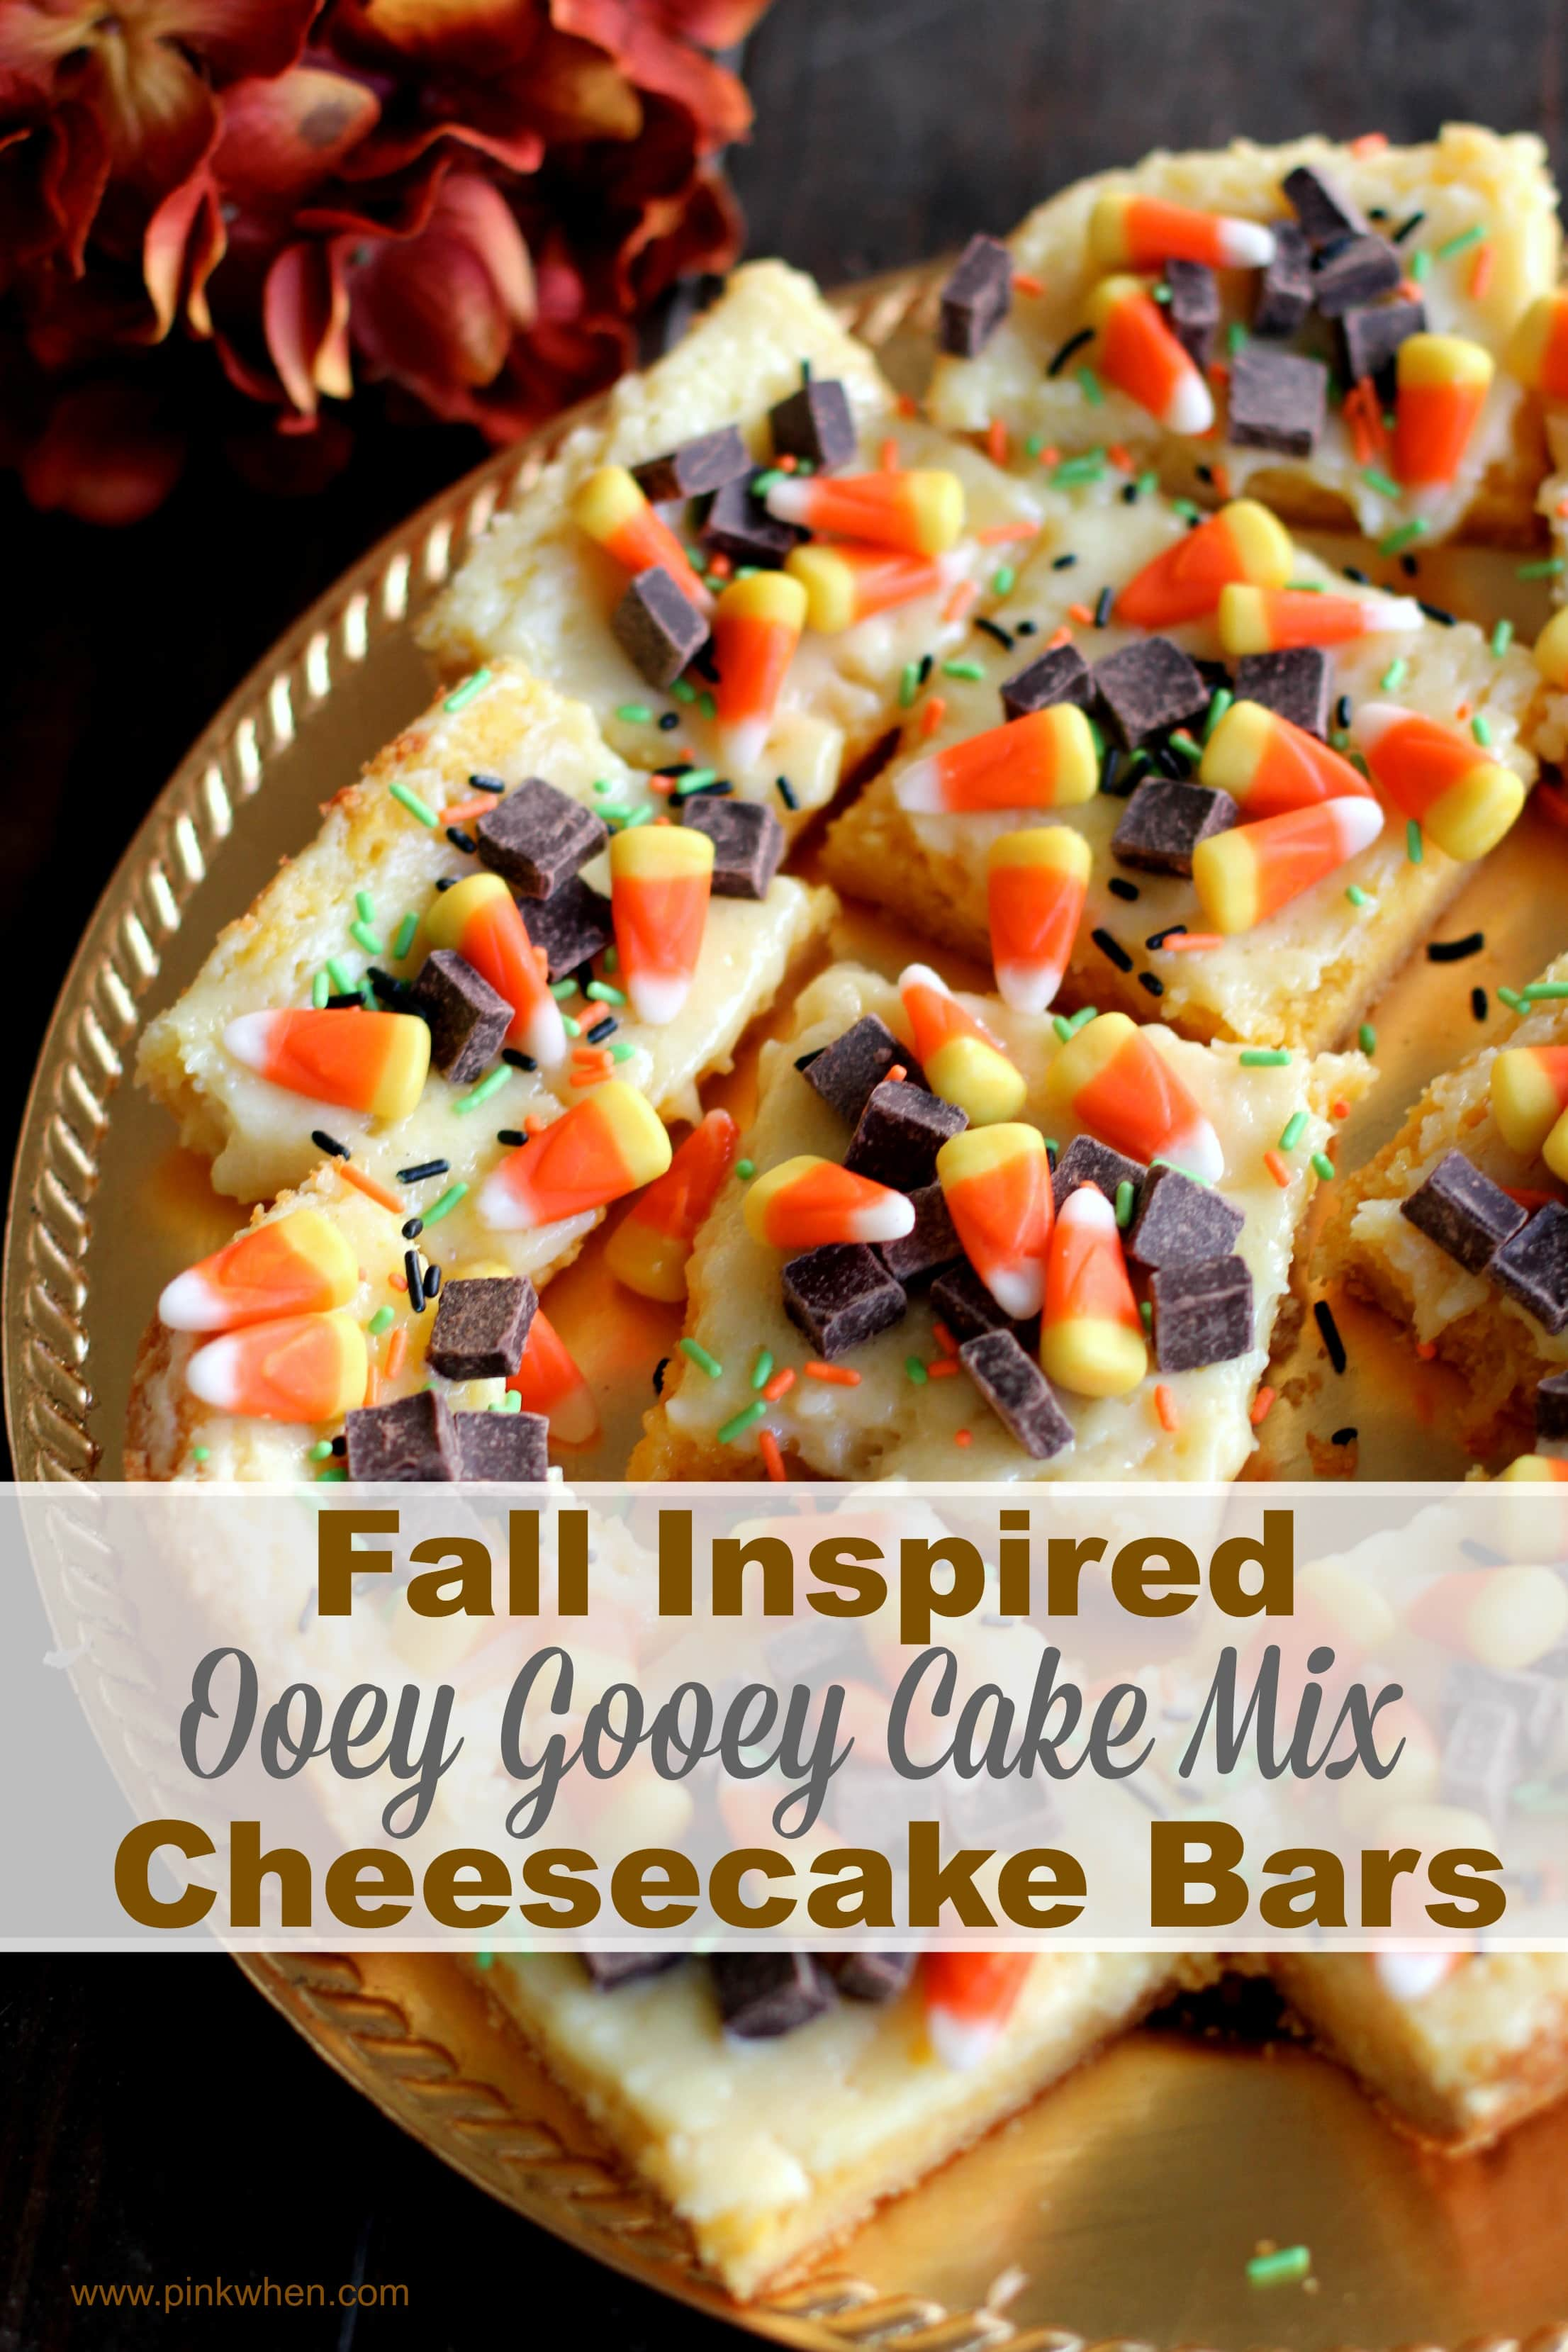 Fall Inspired Ooey Gooey Cake Mix Cheesecake Bars via PinkWhen.com